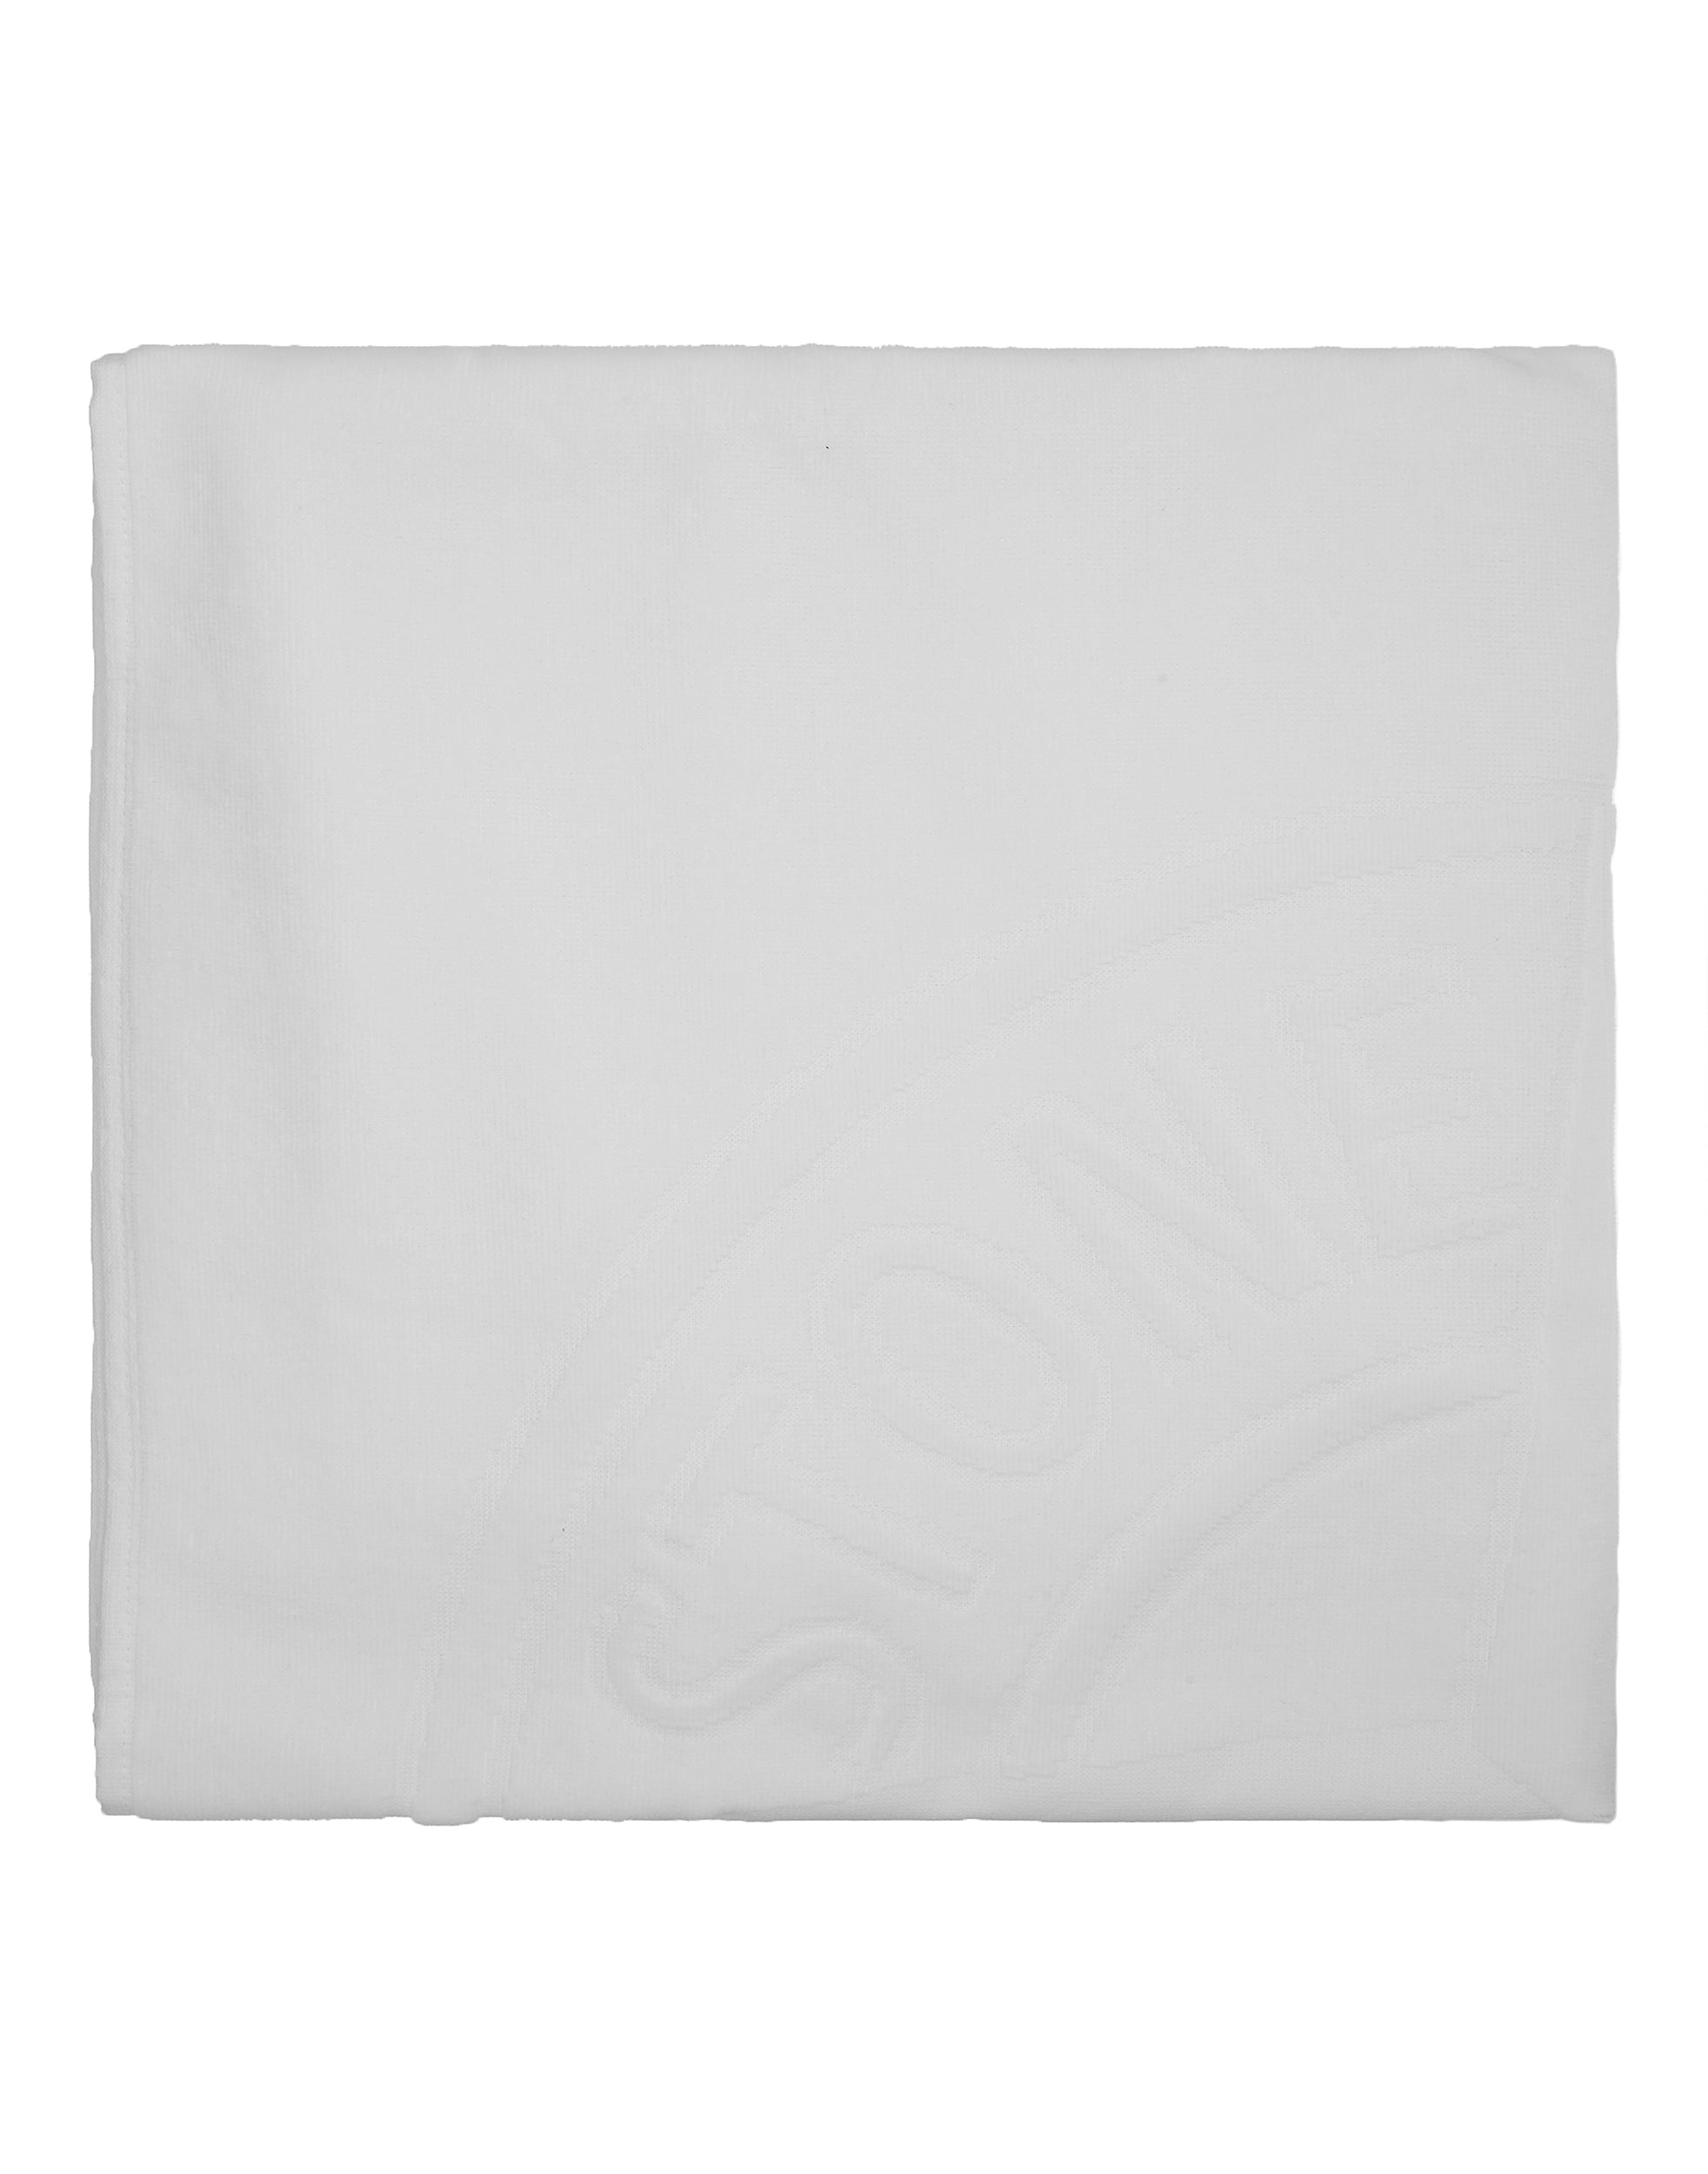 91062 Beach Towel in White